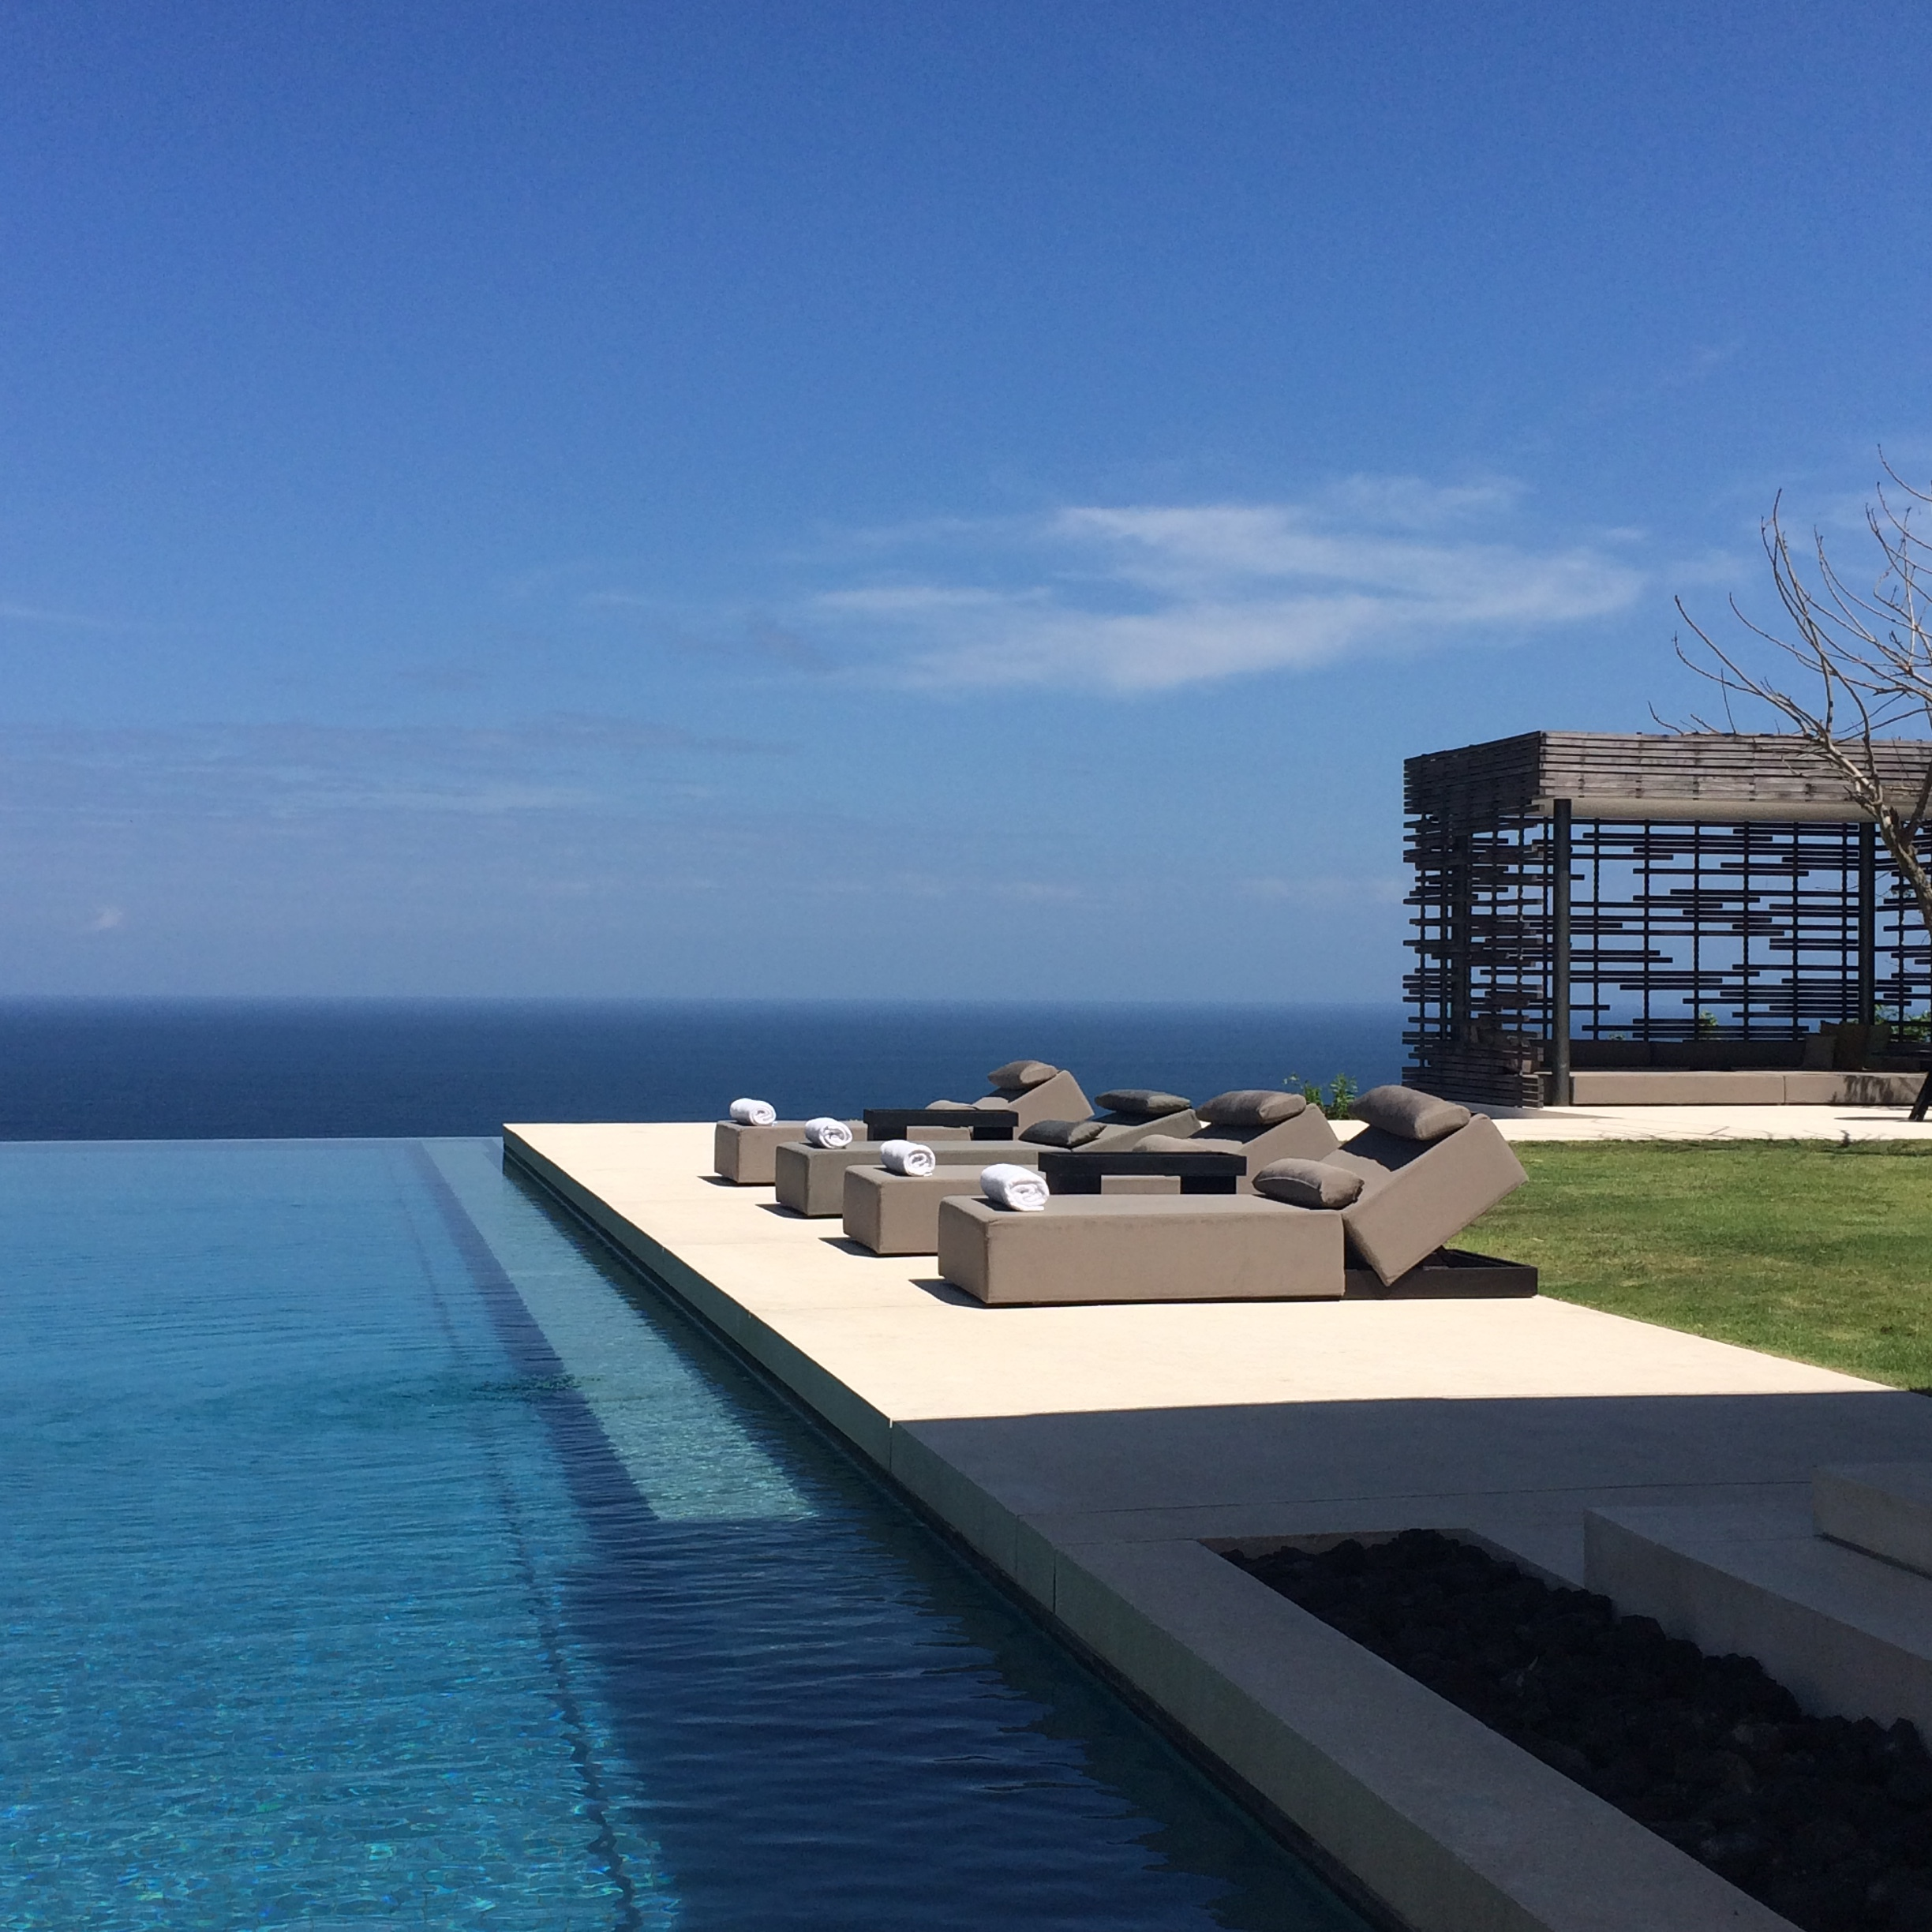 The view from one of Sarah's recent trips to Bali, because everyone deserves a little downtime.